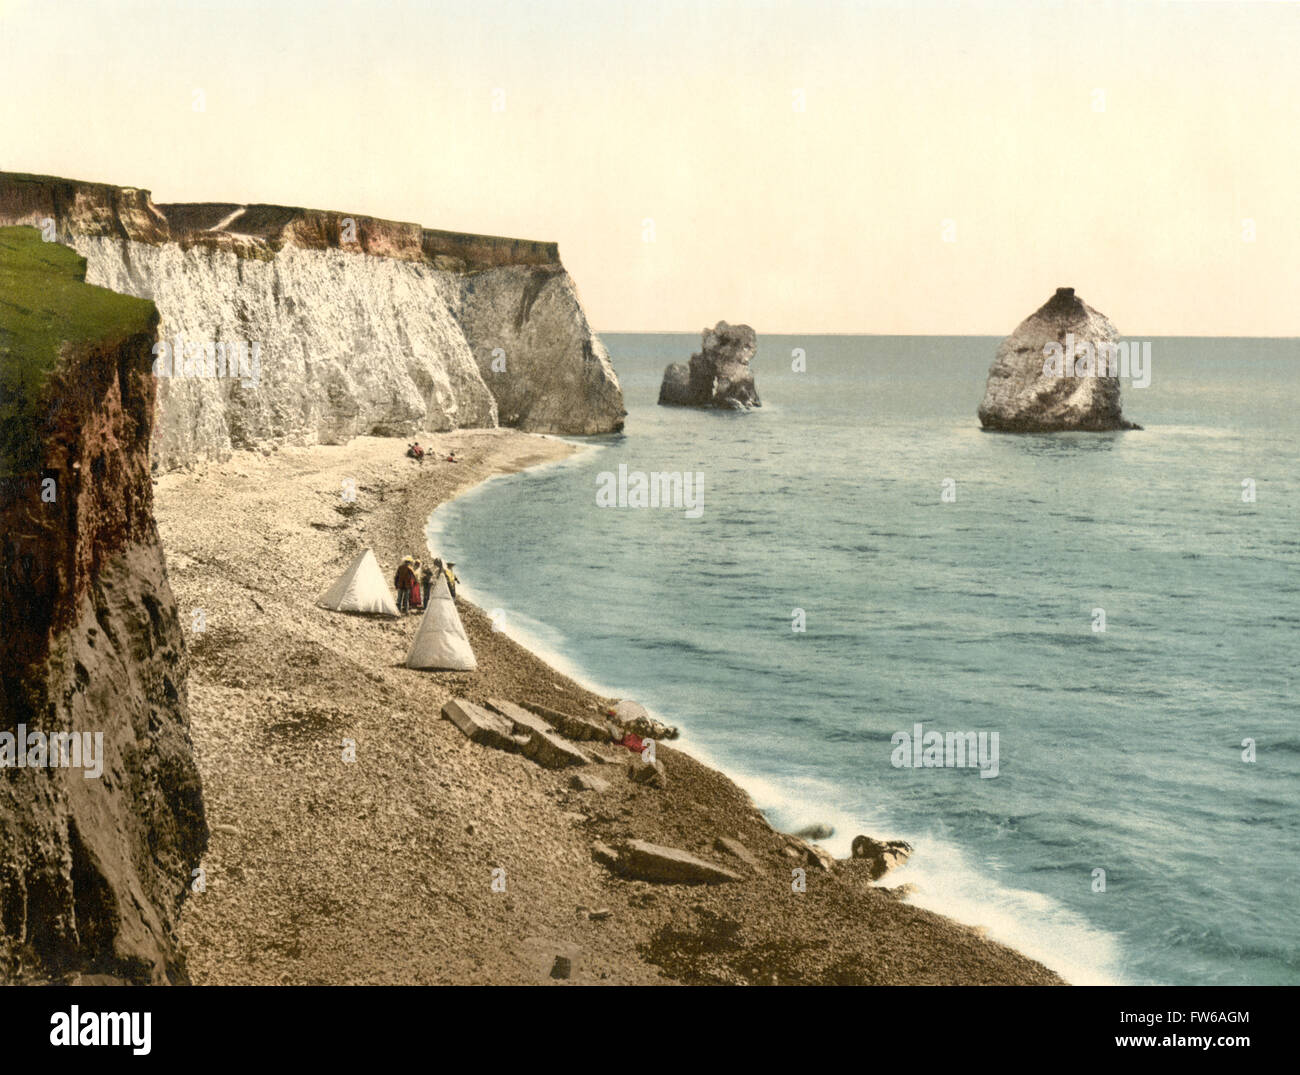 Freshwater Bay Arch and Stag Rocks, Isle of Wight, England, Photochrome Print, circa 1900 - Stock Image